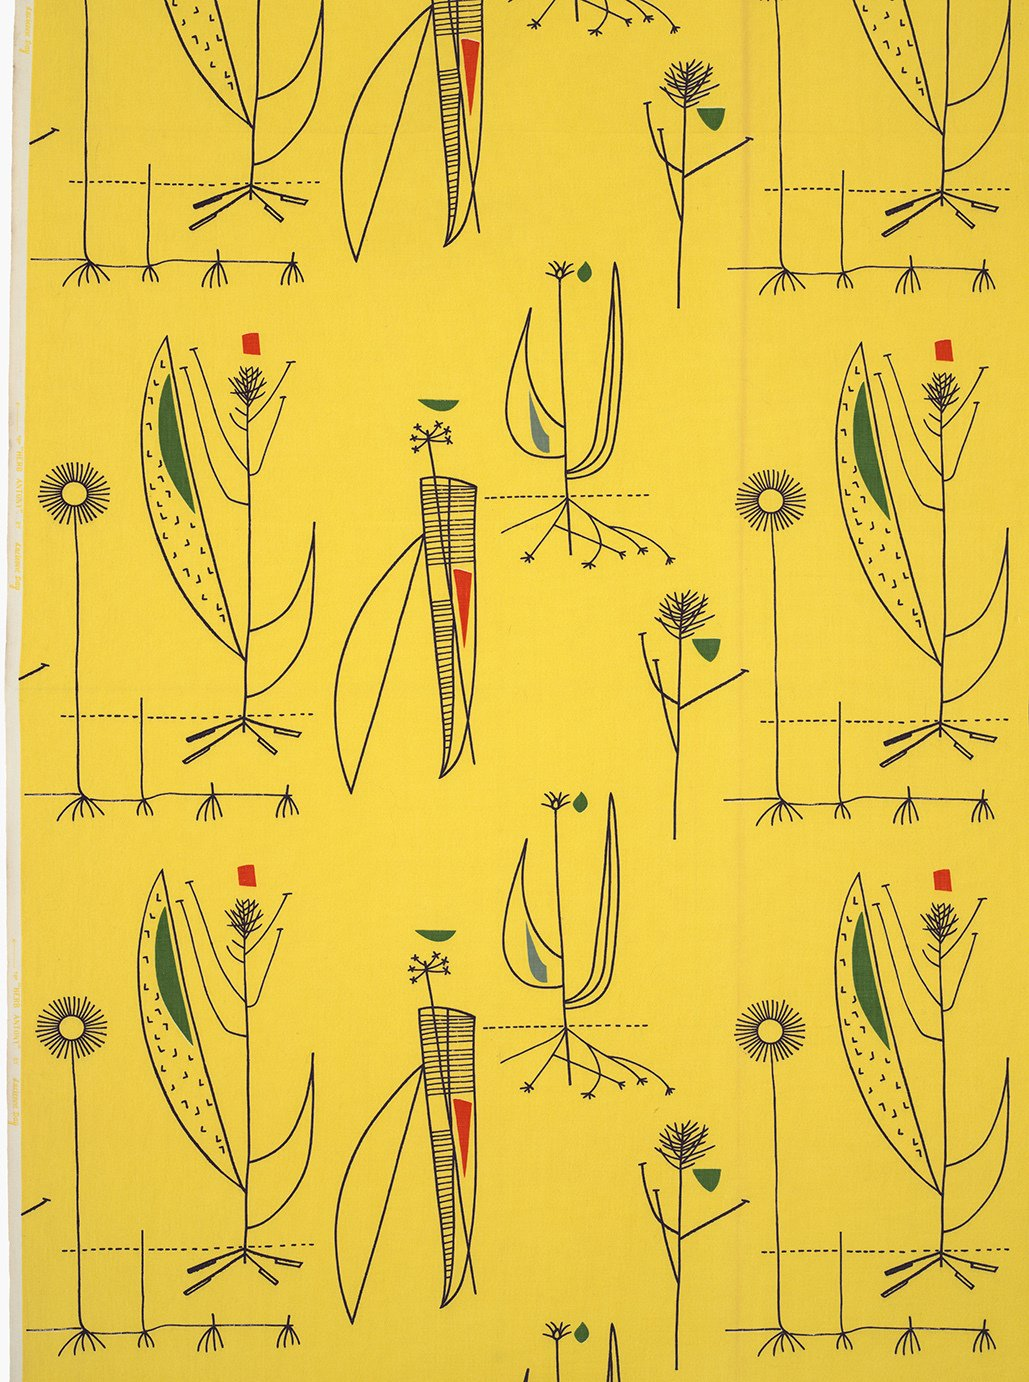 Day's Herb Antony fabric for Heal's (1956) is an example of her bright, optimistic prints that were an antidote to the austerity of World War II and were widely embraced as a fresh alternative to traditional floral fabrics. Image courtesy of The Robin & Lucienne Day Foundation. Collection of Jill A. Wiltse and H. Kirk Brown III, Denver.